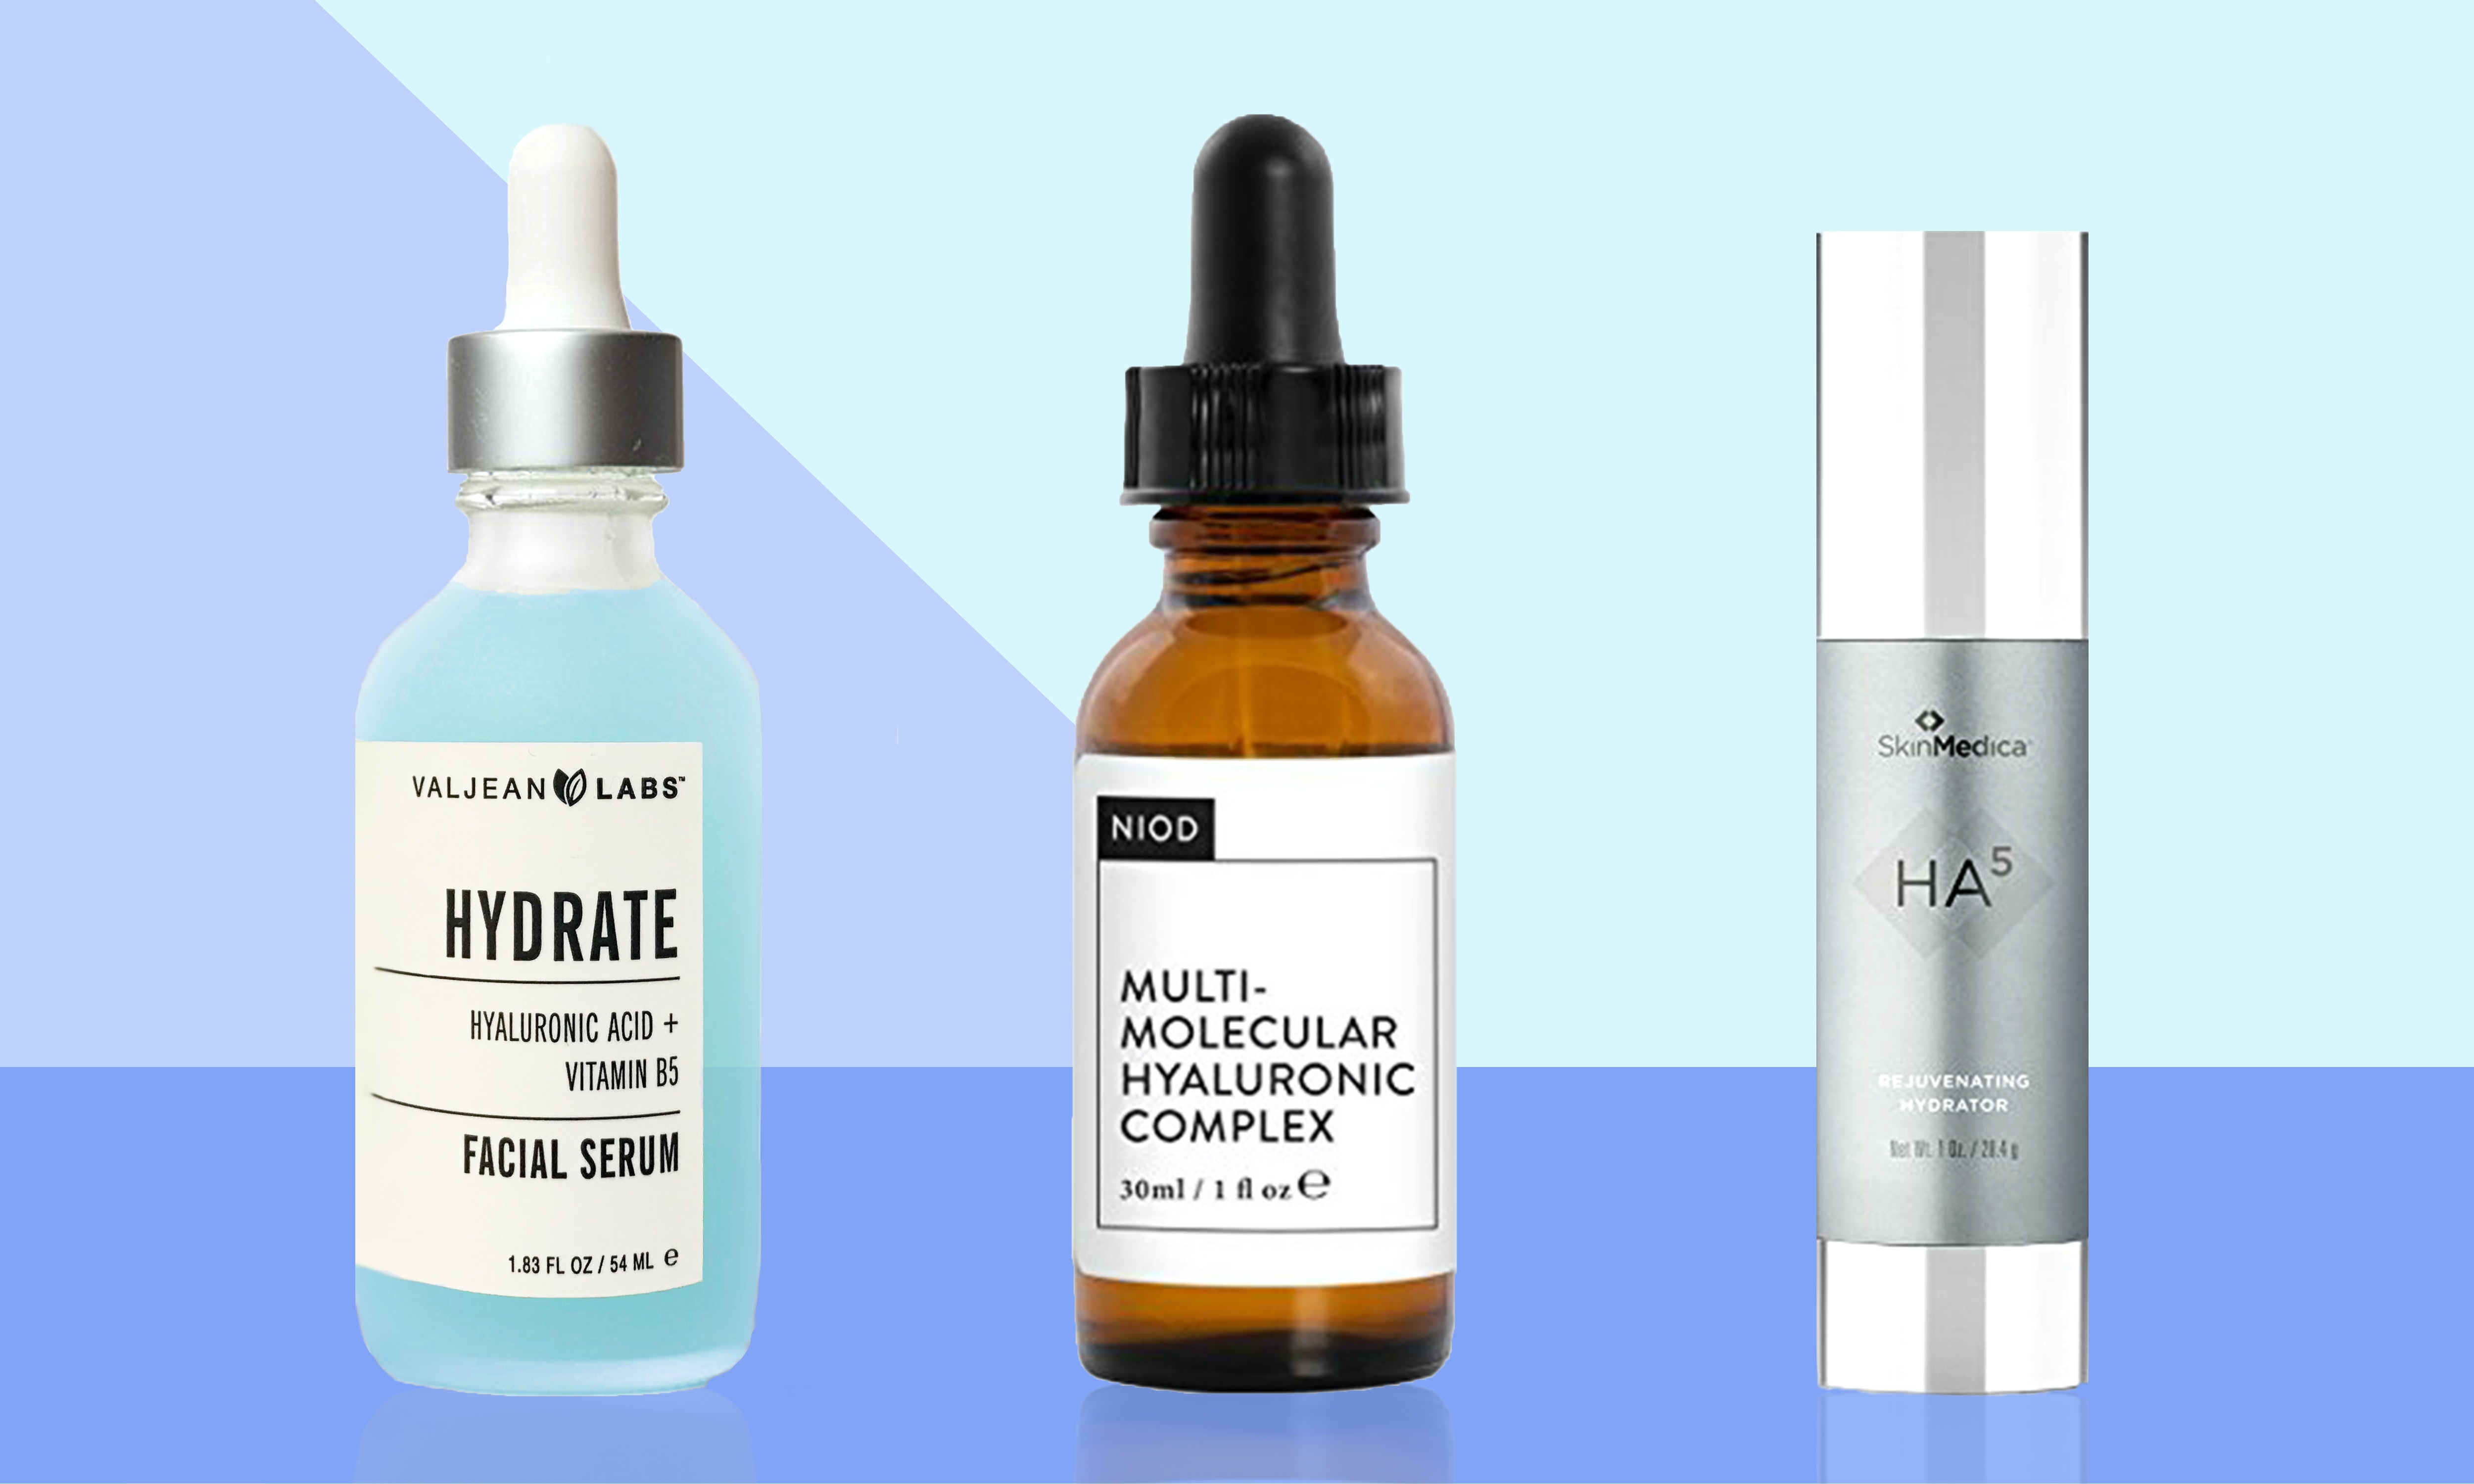 Best way to take hyaluronic acid